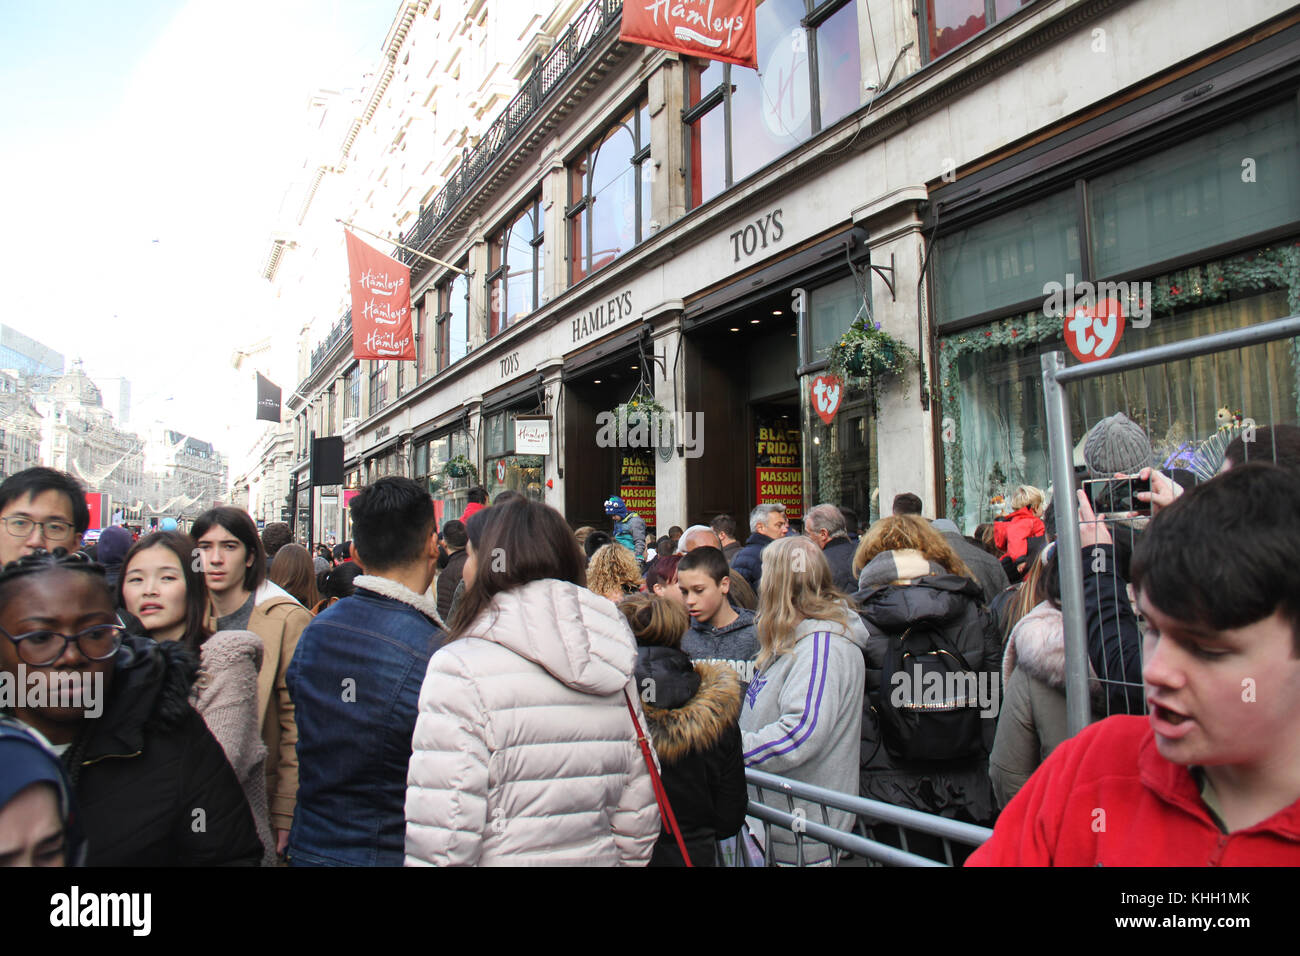 London, UK. 19th Nov 2017.  Hundreds of people attended the Hamleys Christmas Toy Parade on a traffic-free Regents - Stock Image